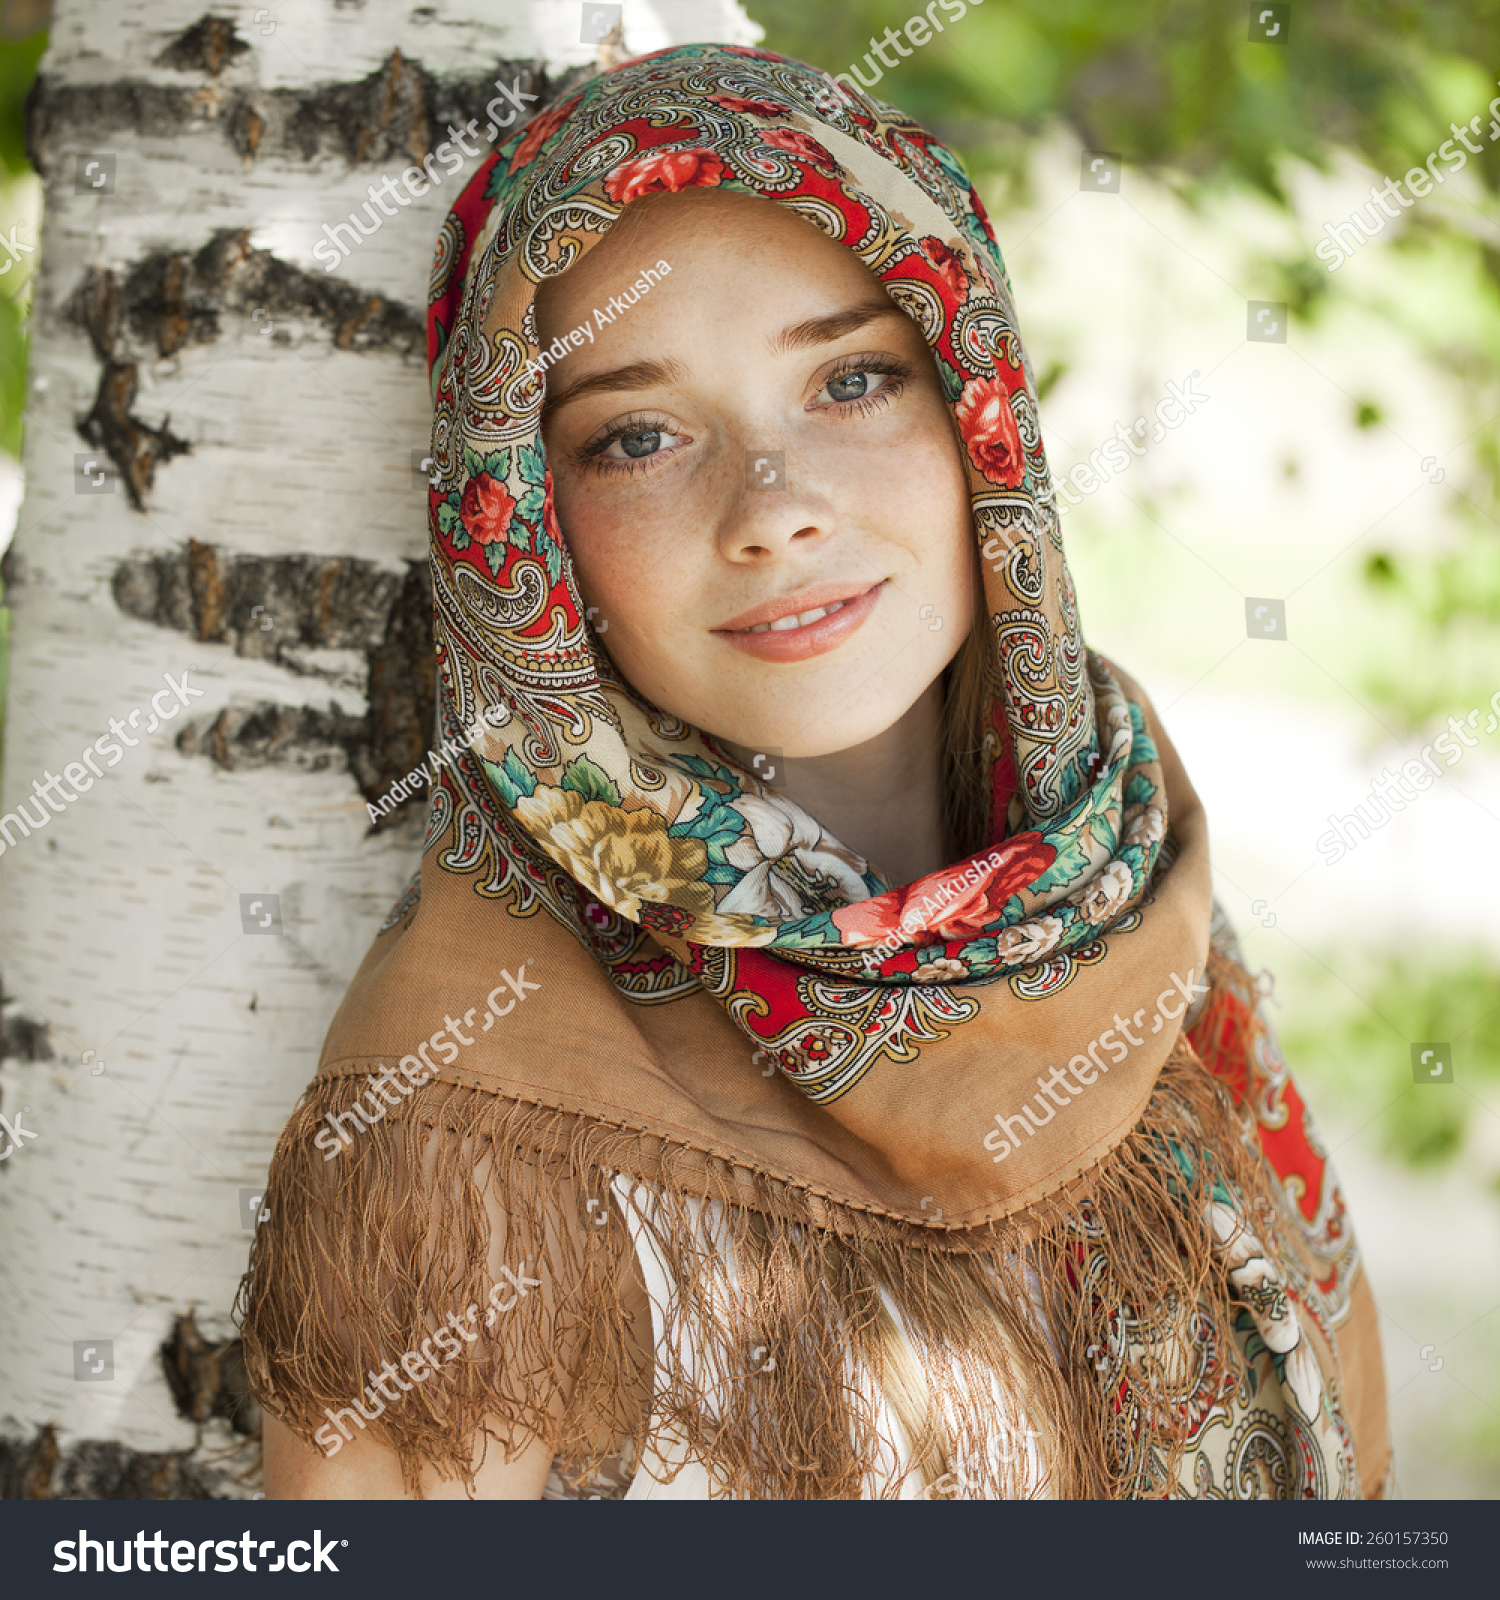 https://image.shutterstock.com/z/stock-photo-russian-beauty-woman-in-the-national-patterned-scarf-260157350.jpg